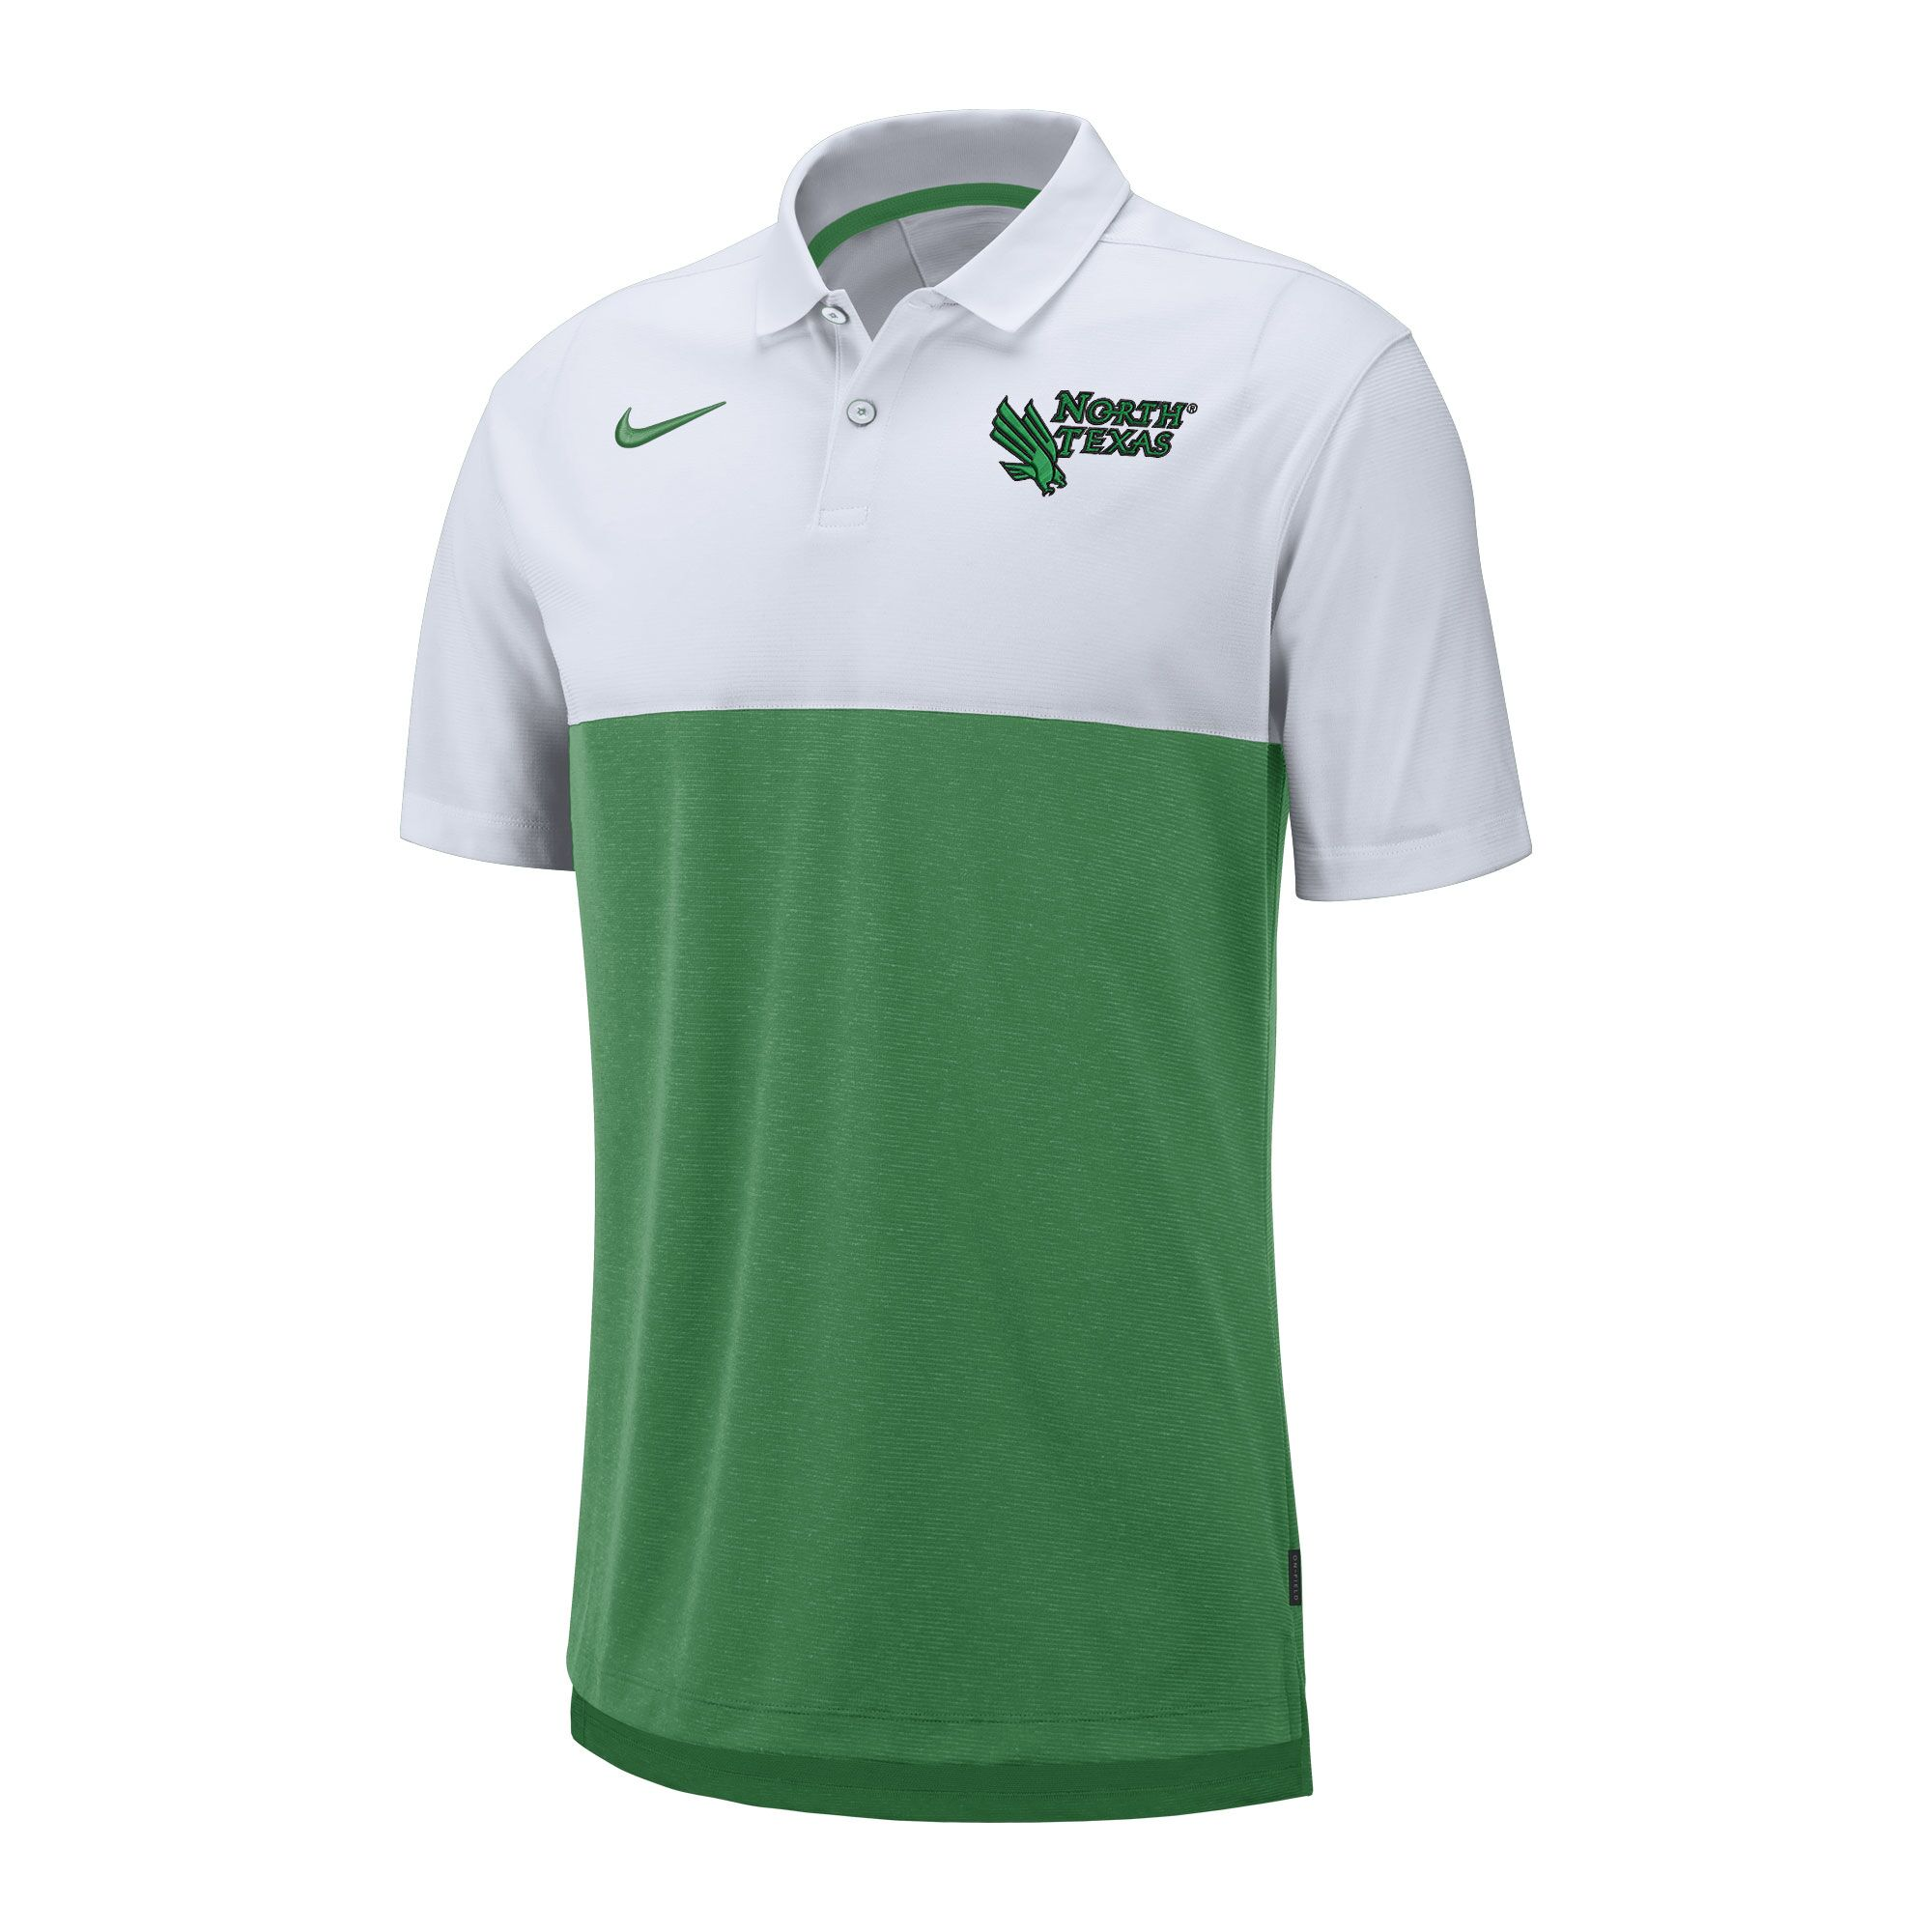 2019 SIDELINE EARLY SEASON POLO